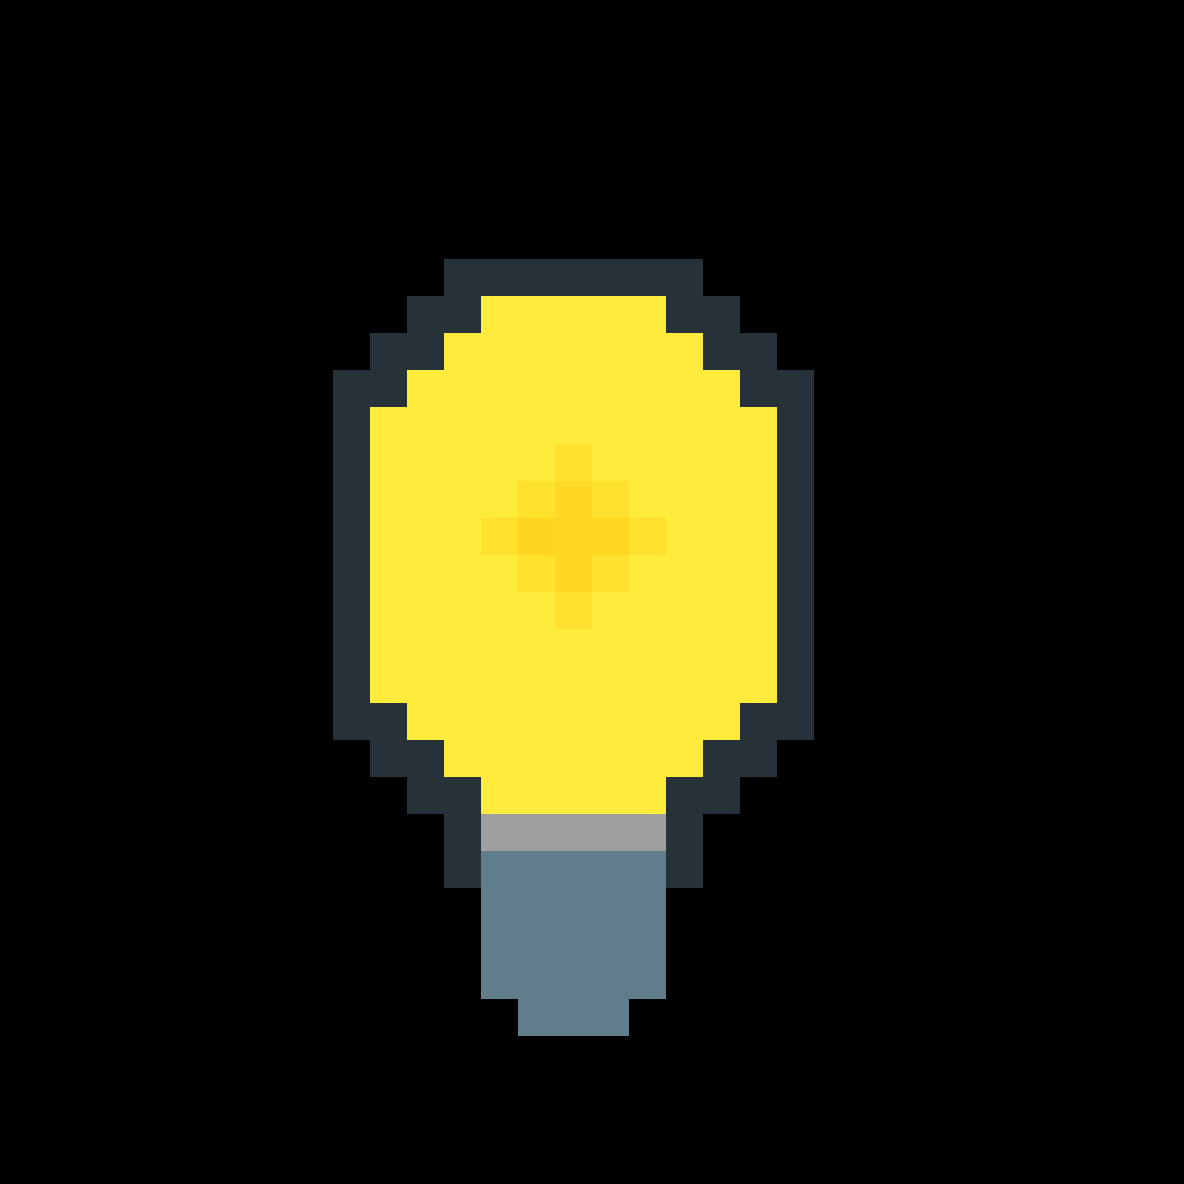 Lightbulb by MegaMage4575